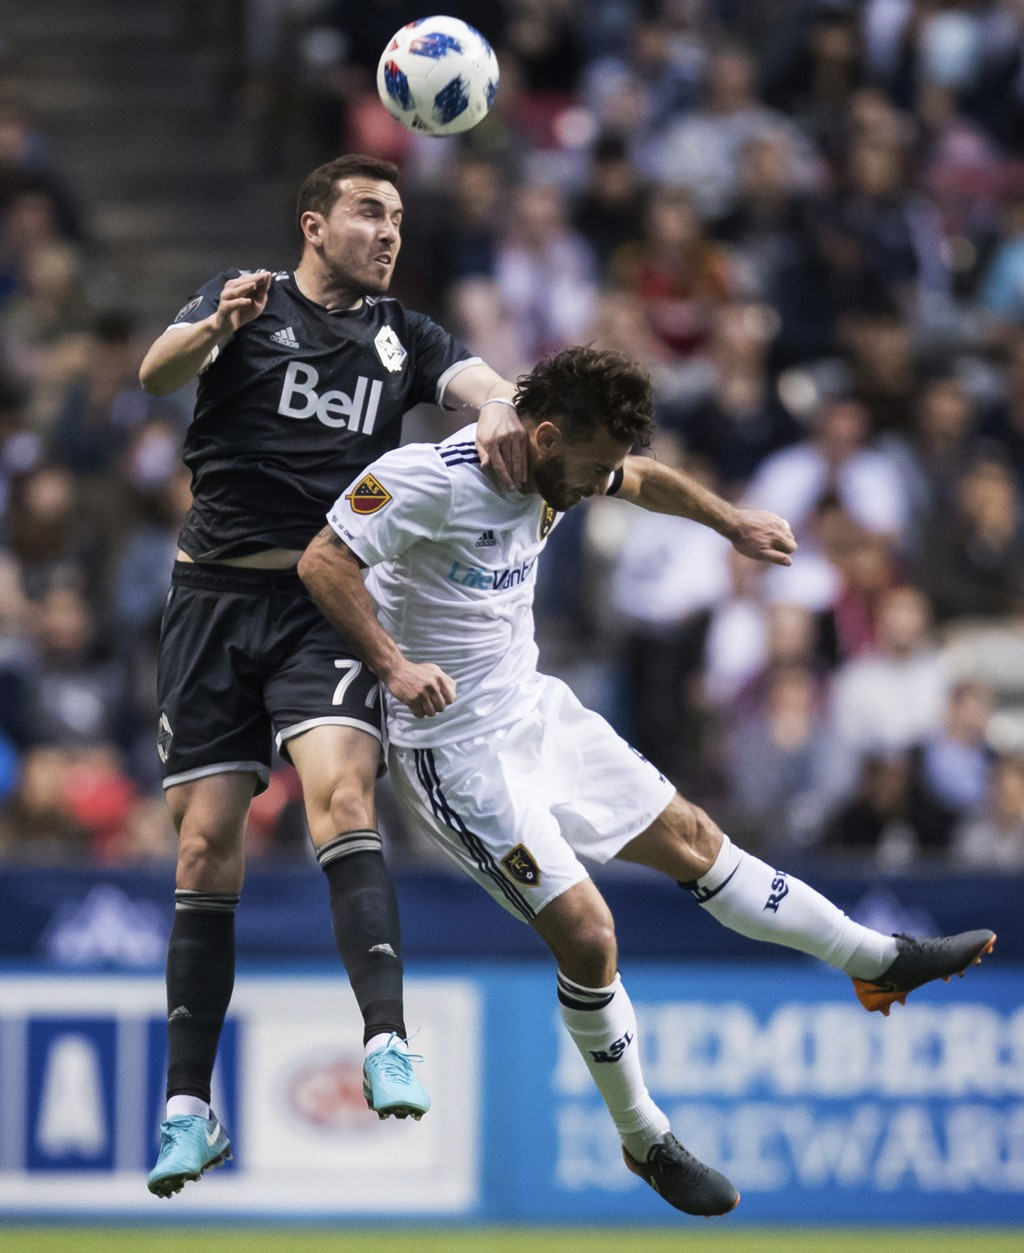 Vancouver Whitecaps' Jordon Mutch, left, and Real Salt Lake's Kyle Beckerman battle for the ball during the first half of an MLS soccer match Friday, ...